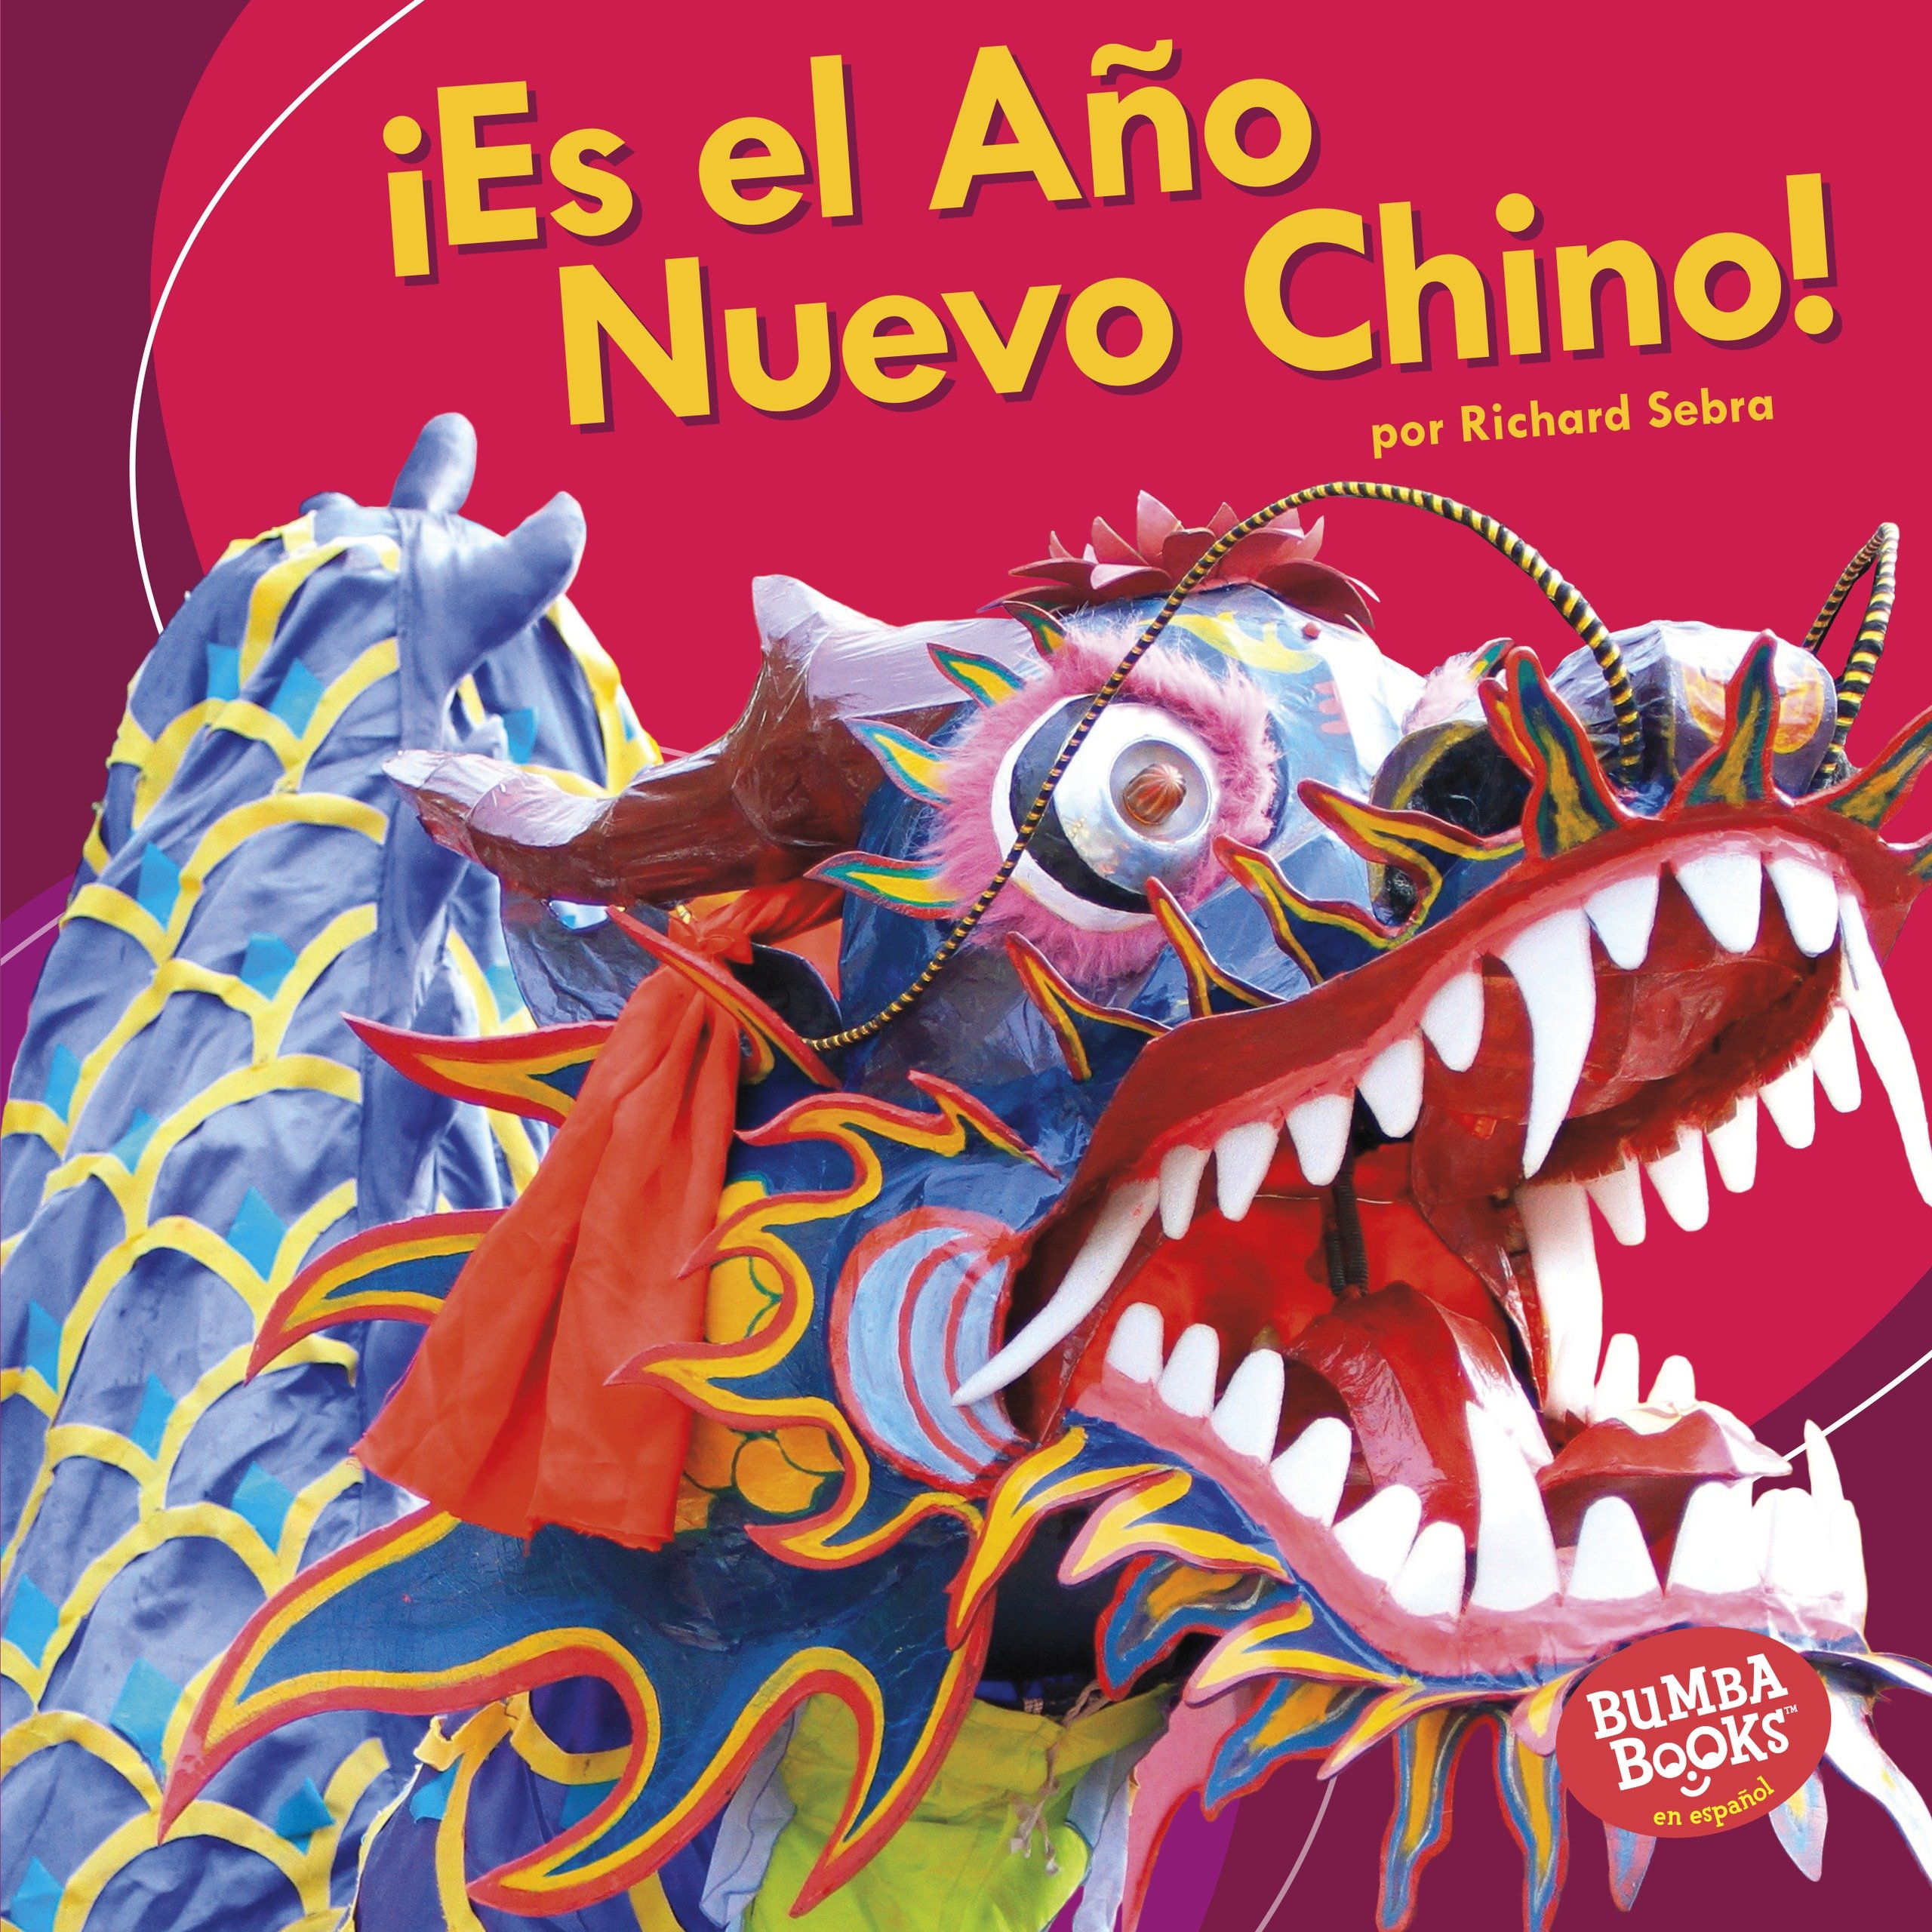 ¡es El Año Nuevo Chino! (It's Chinese New Year!) (Bumba Books en español: ¡Es una fiesta!/ It's a Holiday!) (Spanish Edition)